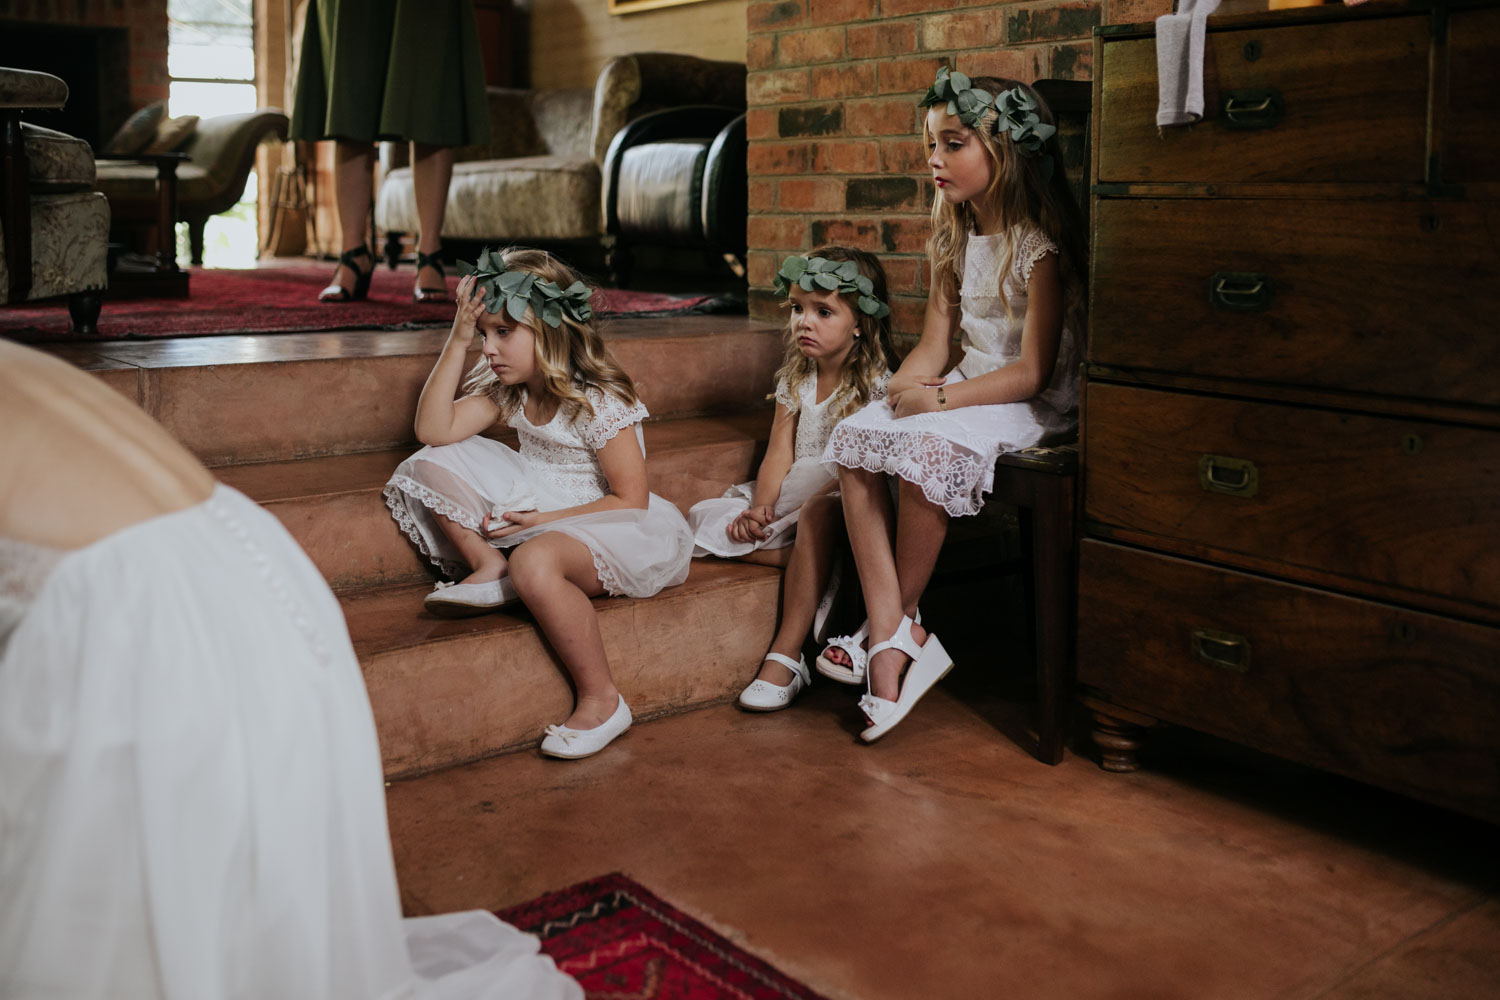 Flower Girls Wearing Eucalyptus Leaf Flower Crowns And White Dresses Sit On Stairs Watching Bride